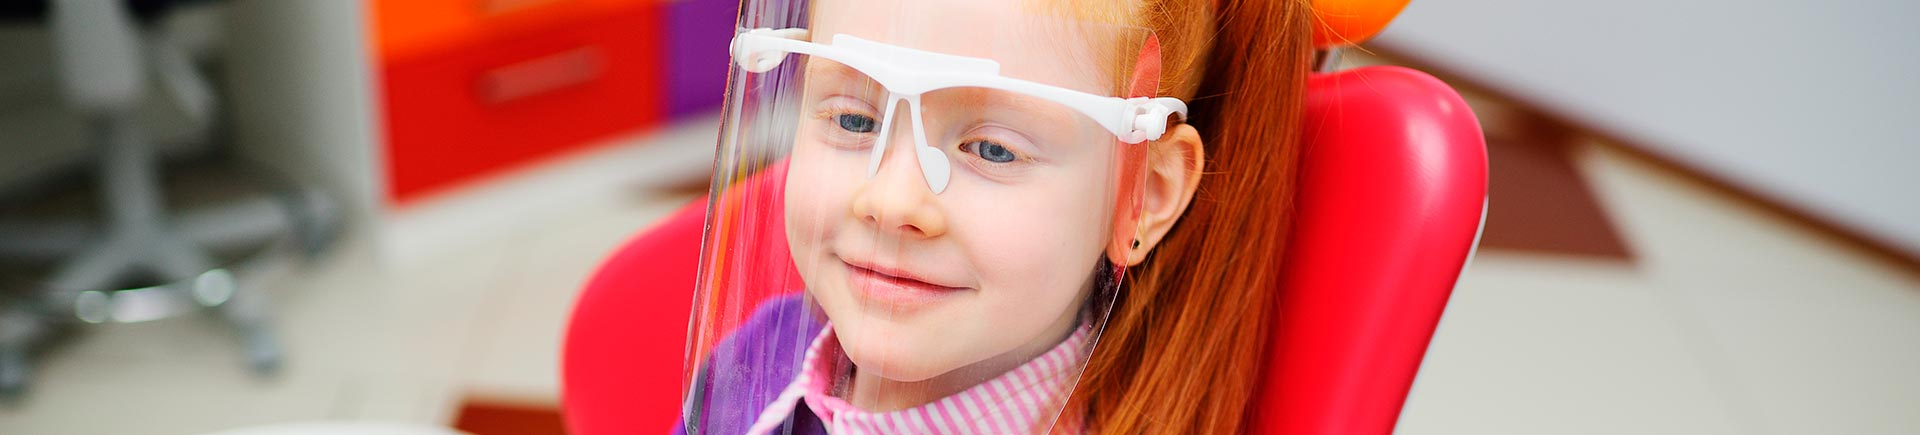 Relaxed little red-haired girl wearing a face shield in a dental chair.